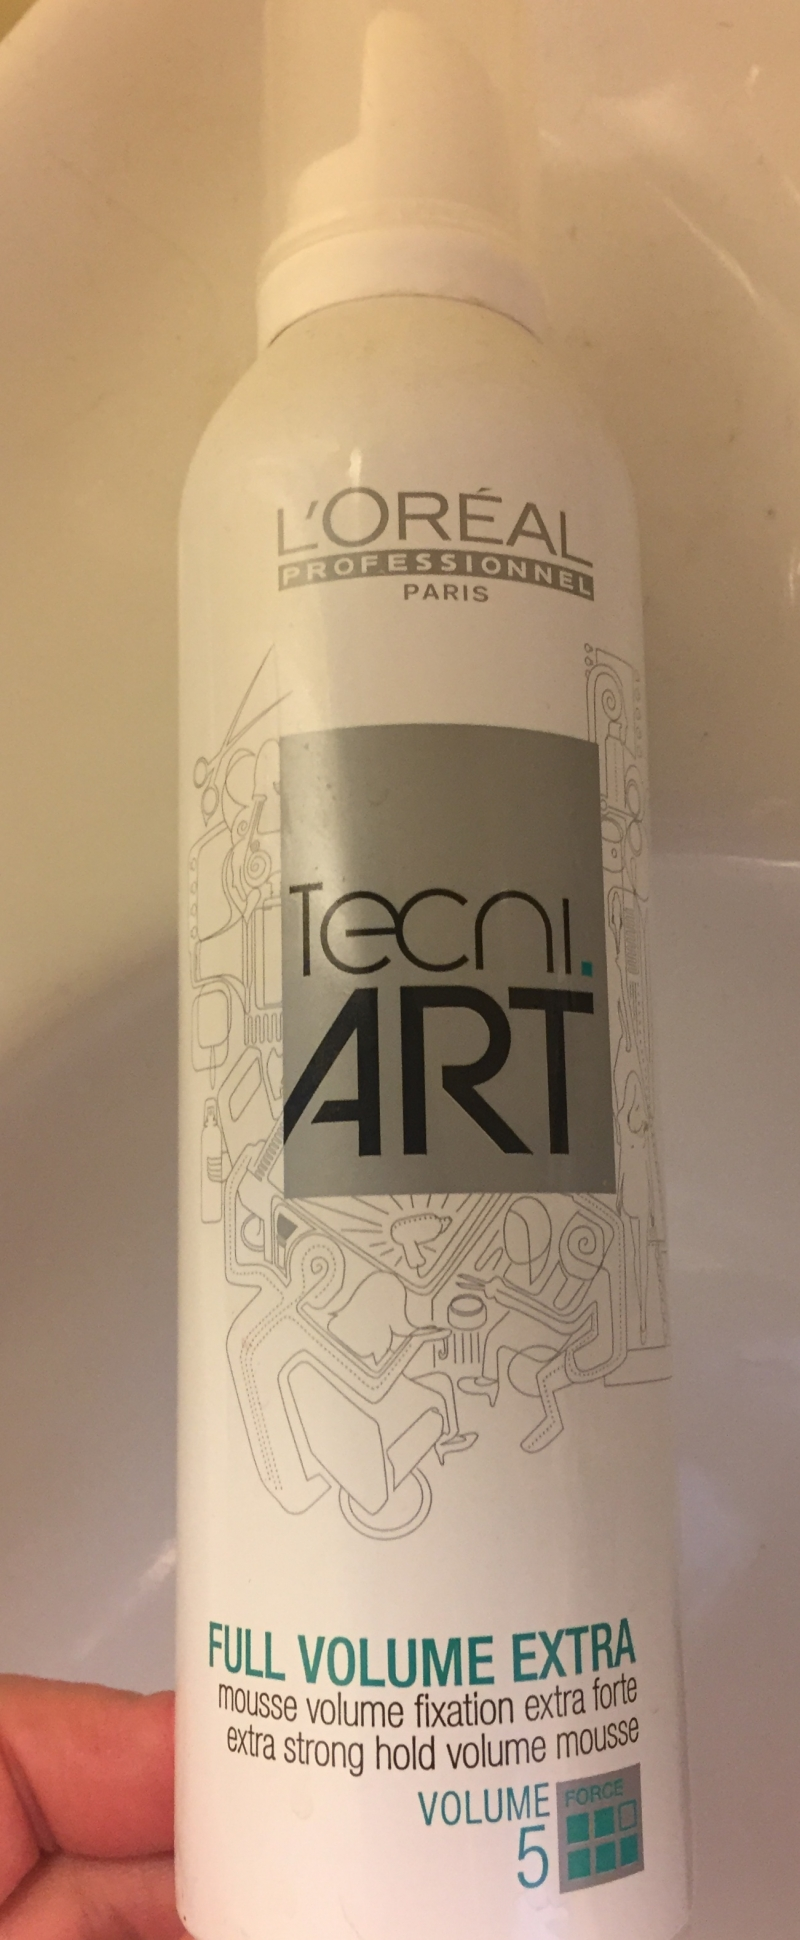 Swatch Tecni Art Full Volume Extra Mousse 400ml, L'Oréal Professionnel